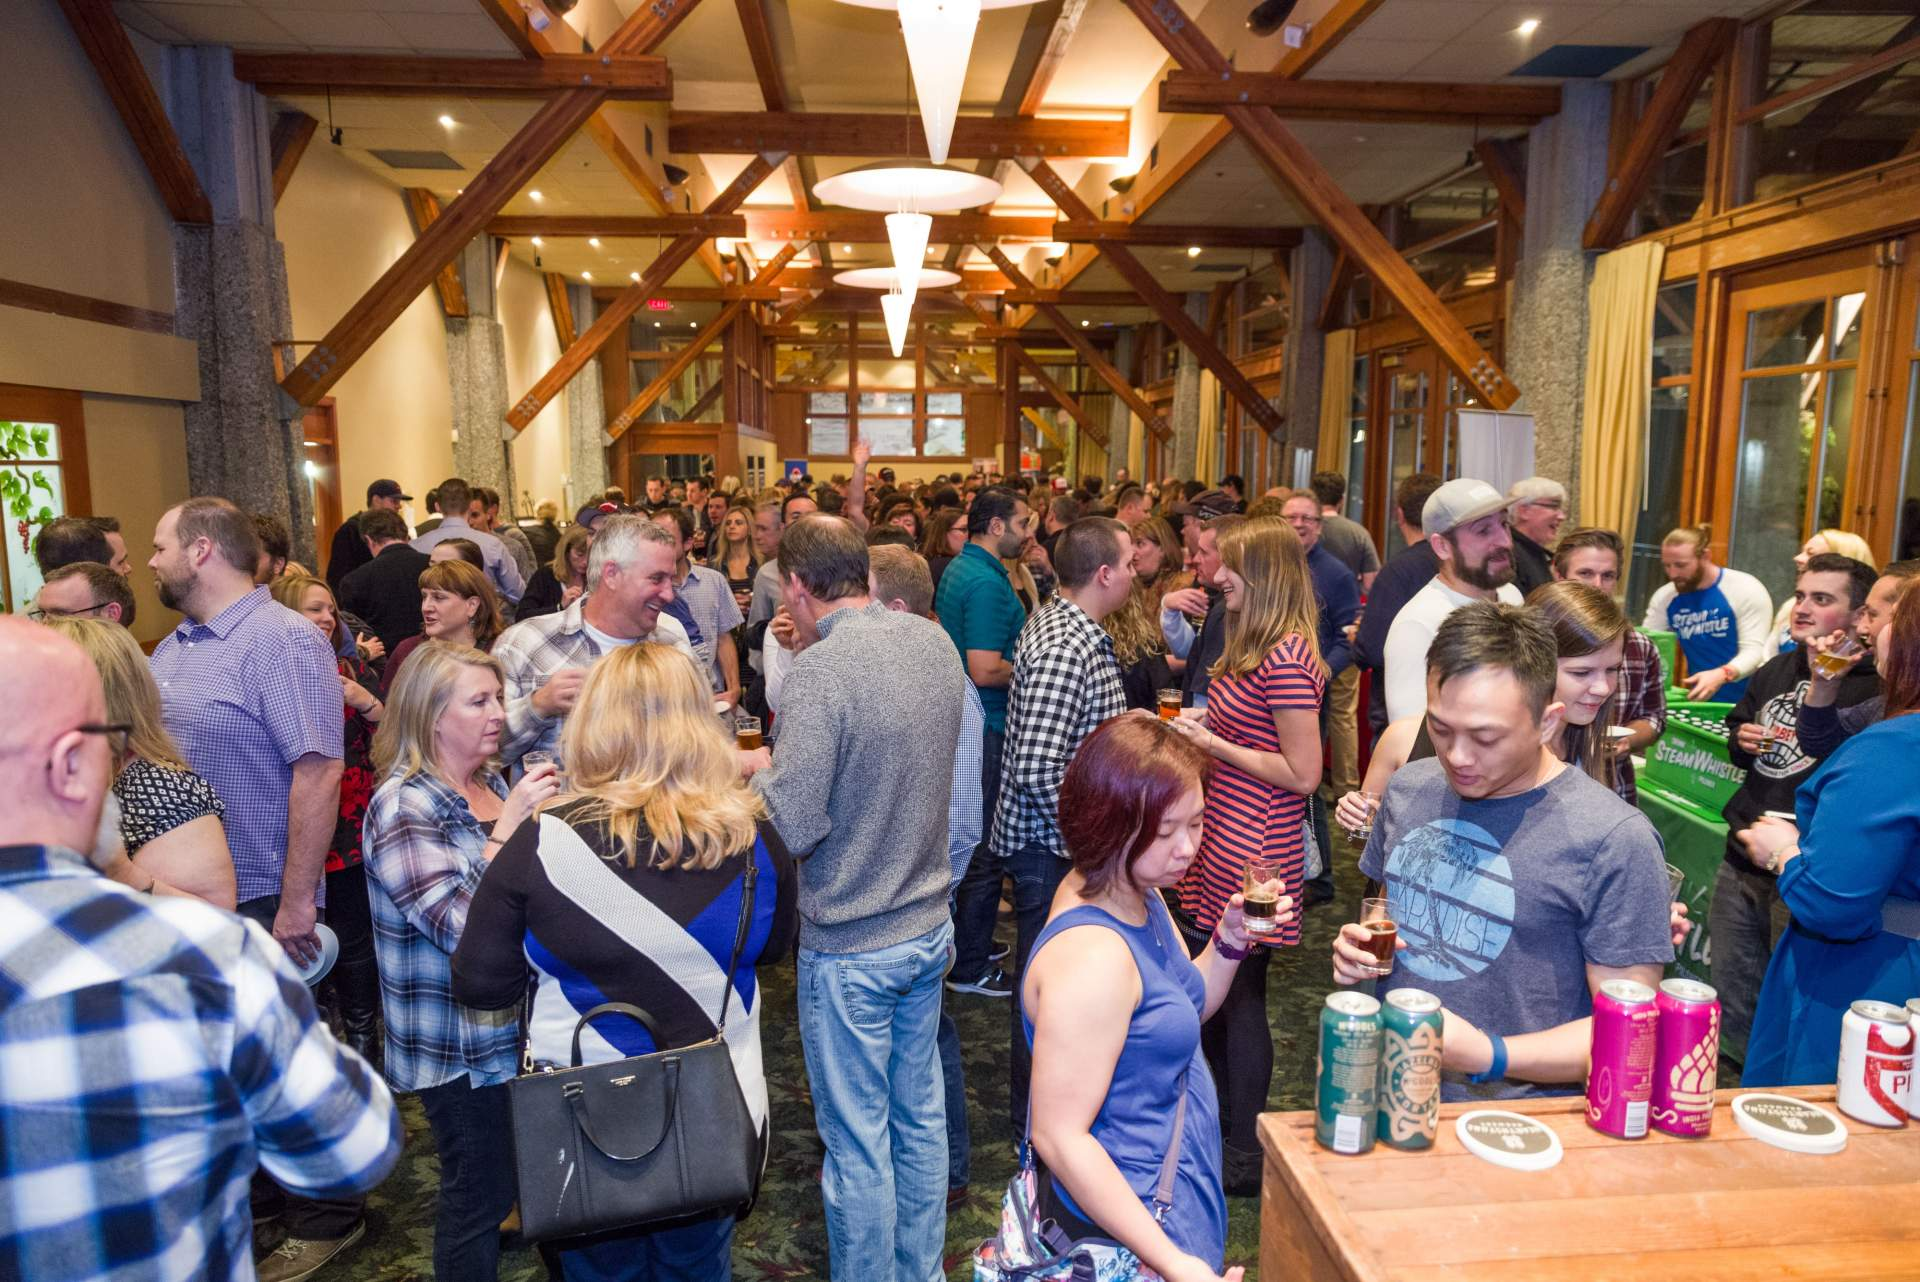 Getting Back To Their Roots: Coquitlam's Beerfest Returns Home